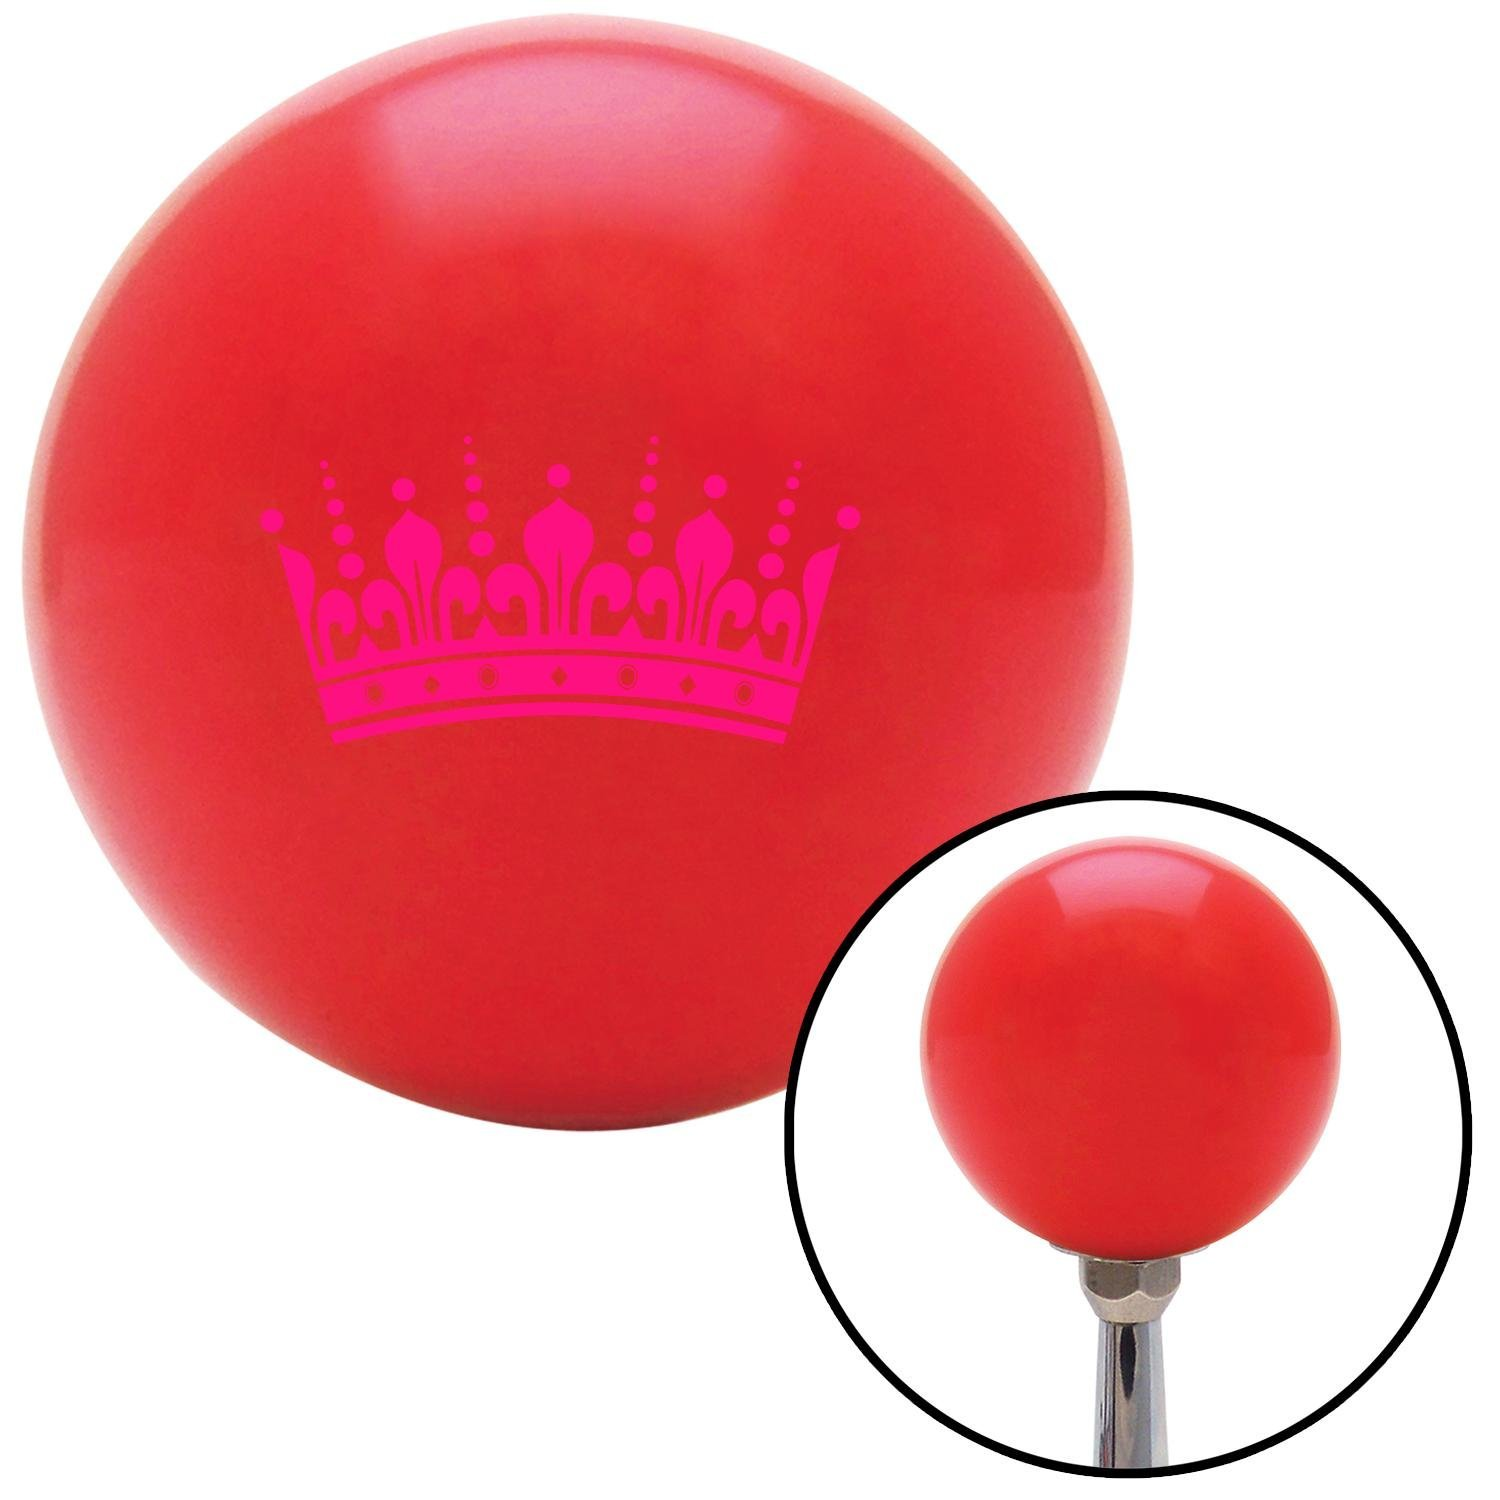 American Shifter 96524 Red Shift Knob with M16 x 1.5 Insert Pink Queens Crown